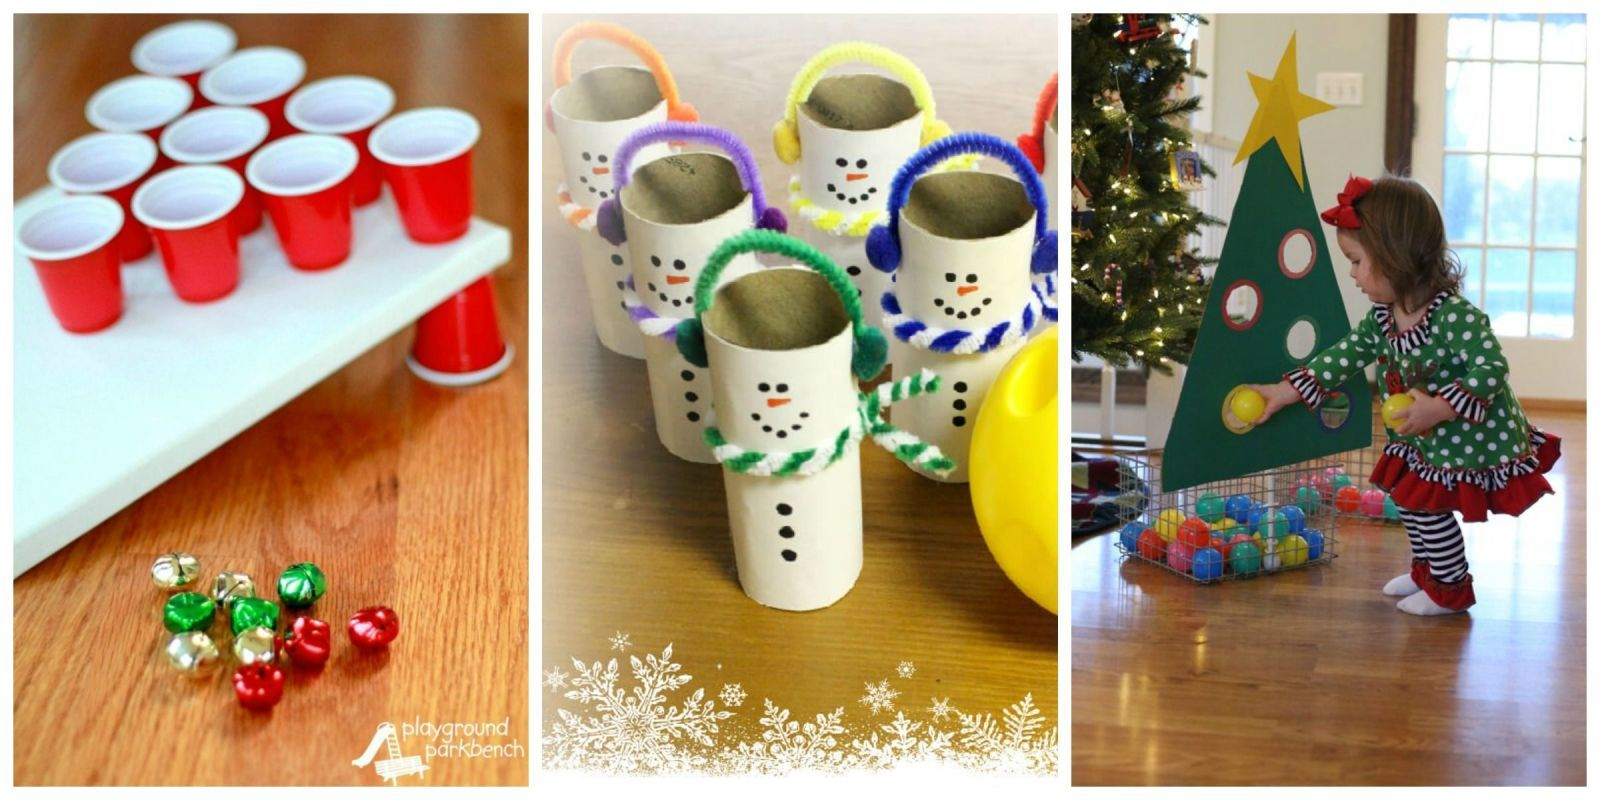 22 Playful Ideas for Christmas Games Your Kids Will Love | Xmas ...